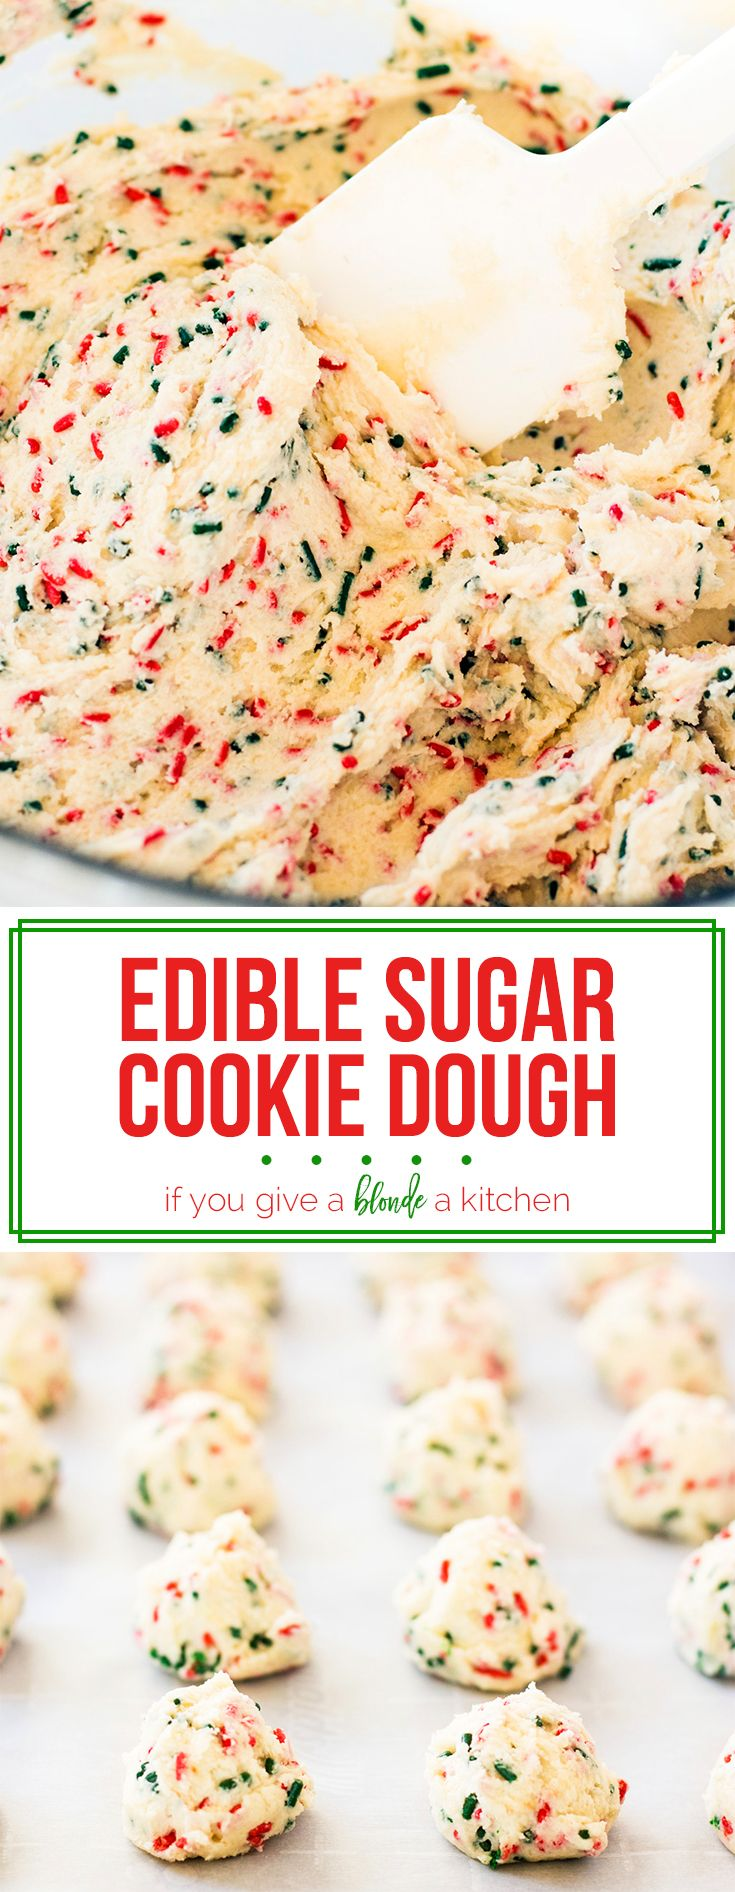 Edible Sugar Cookie Dough | If You Give a Blonde a Kitchen